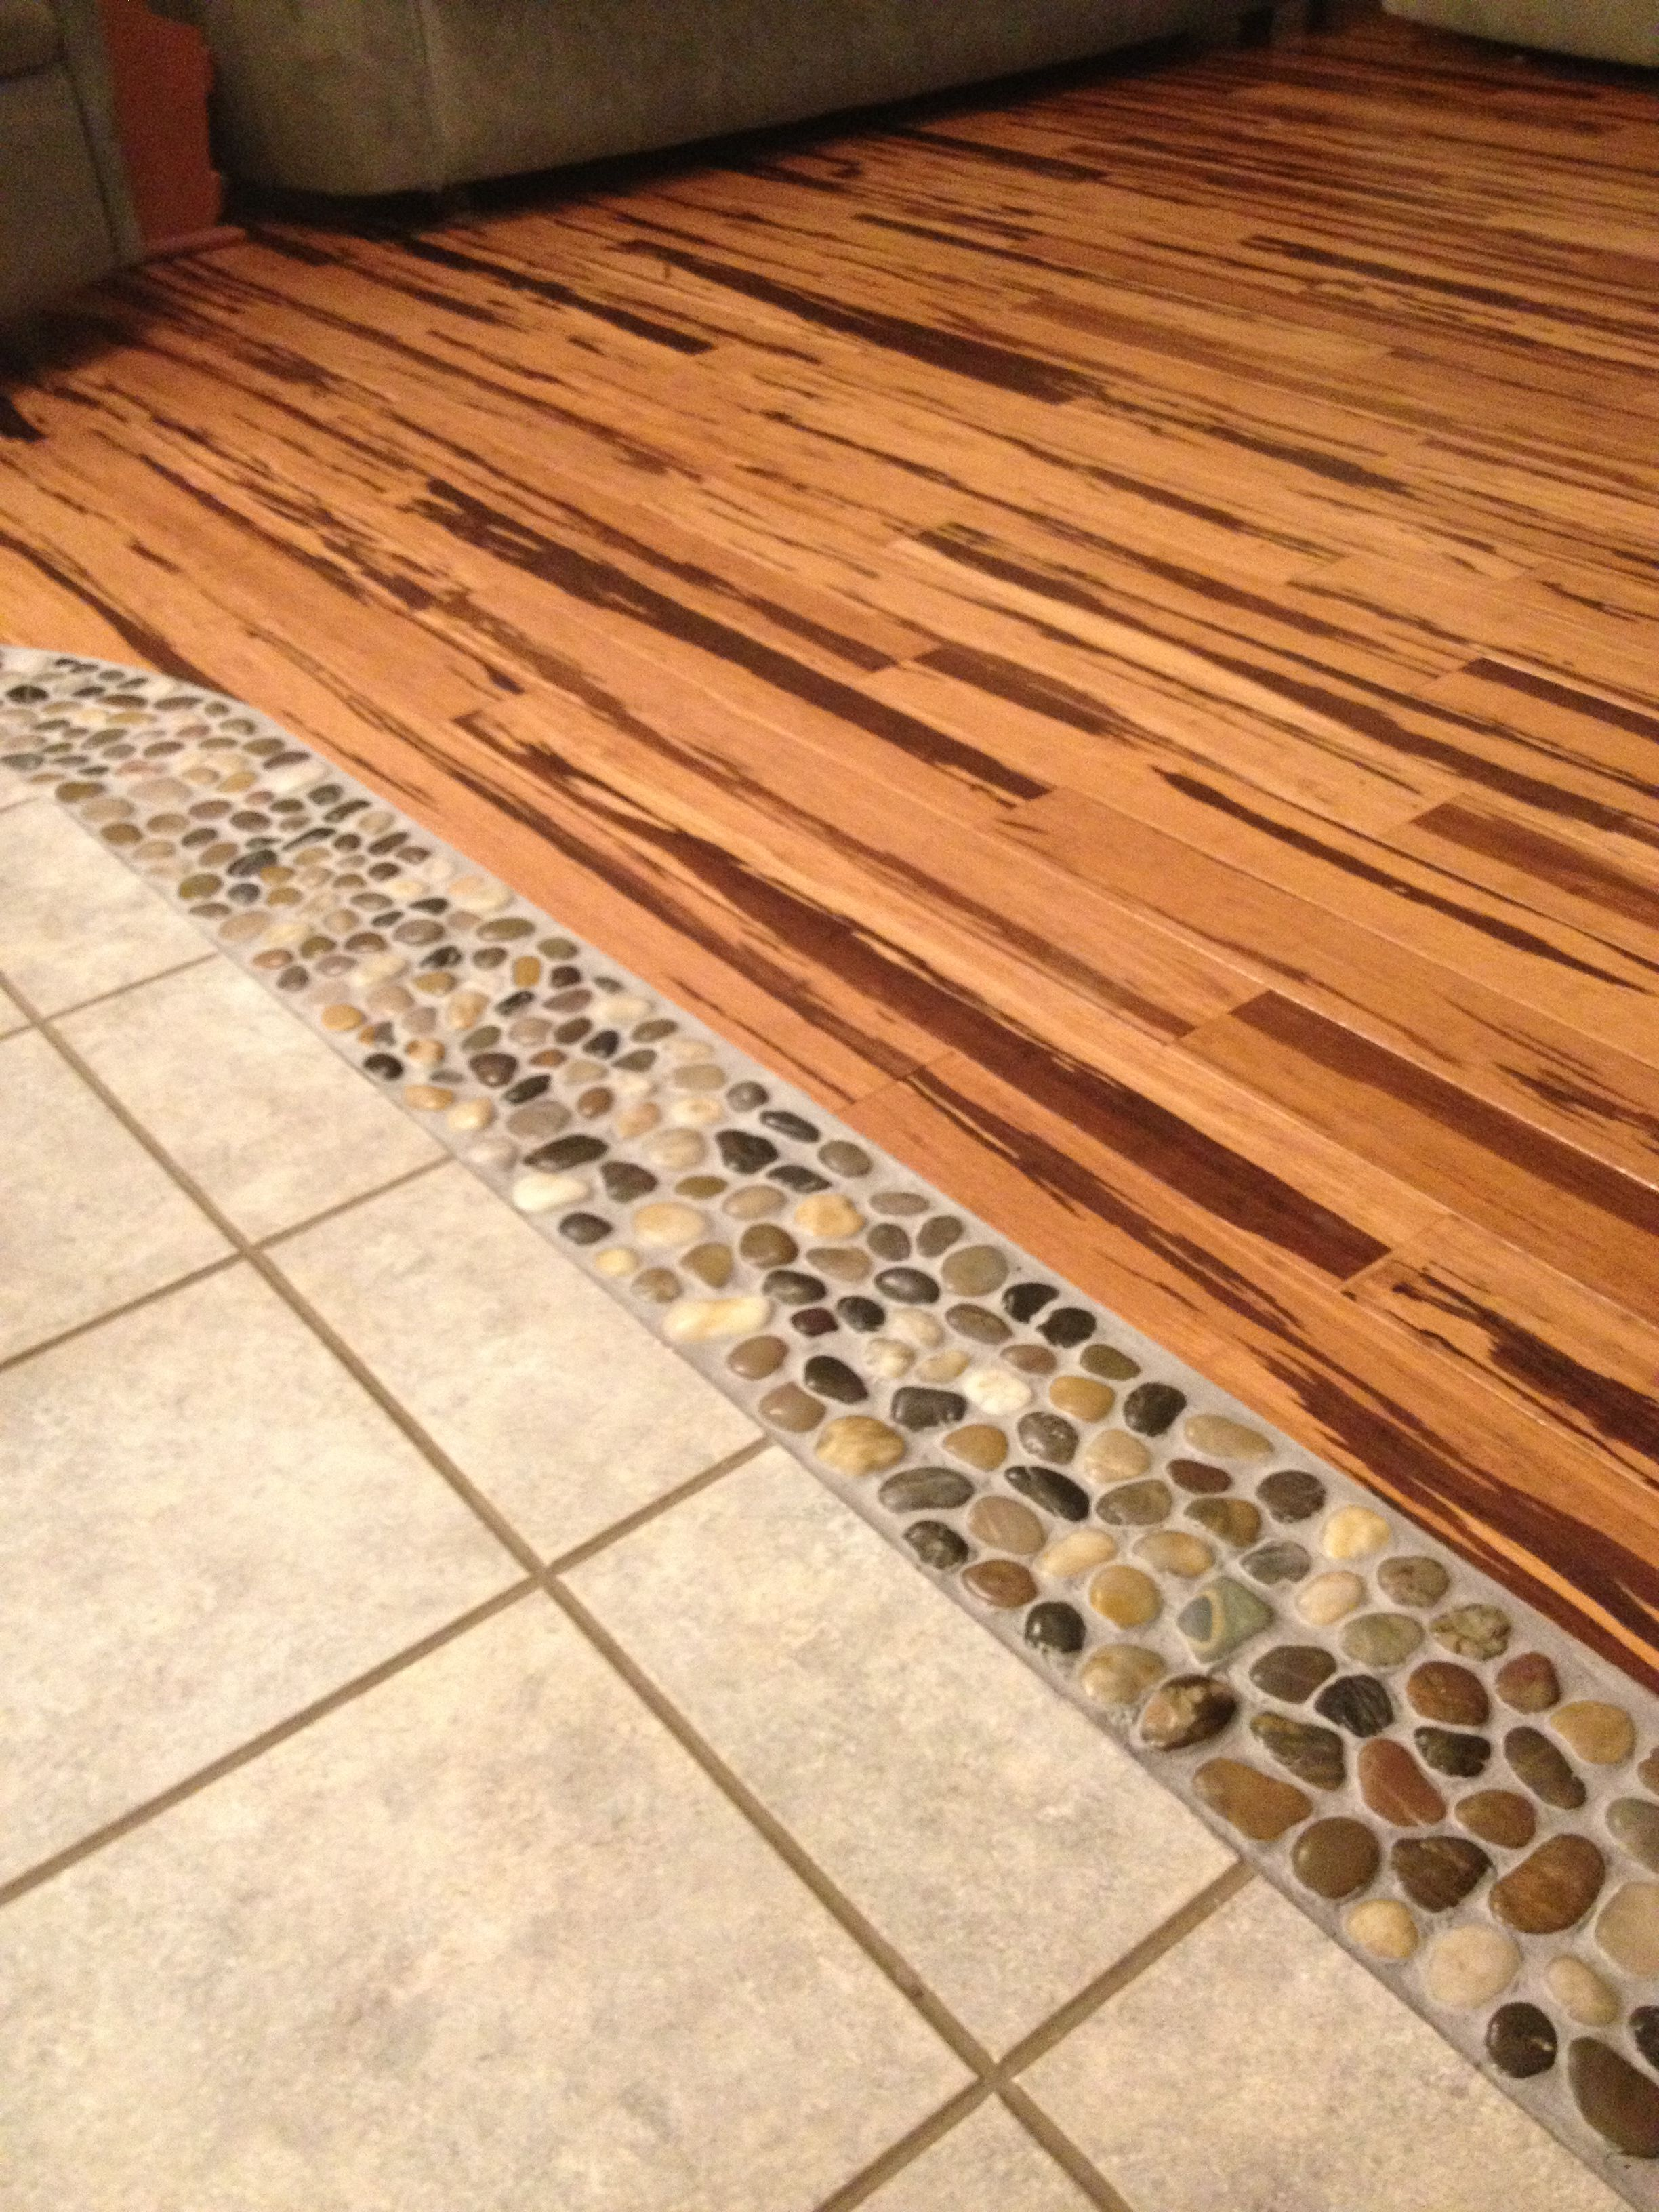 Love my DIY floor project River rock & strand bamboo flooring